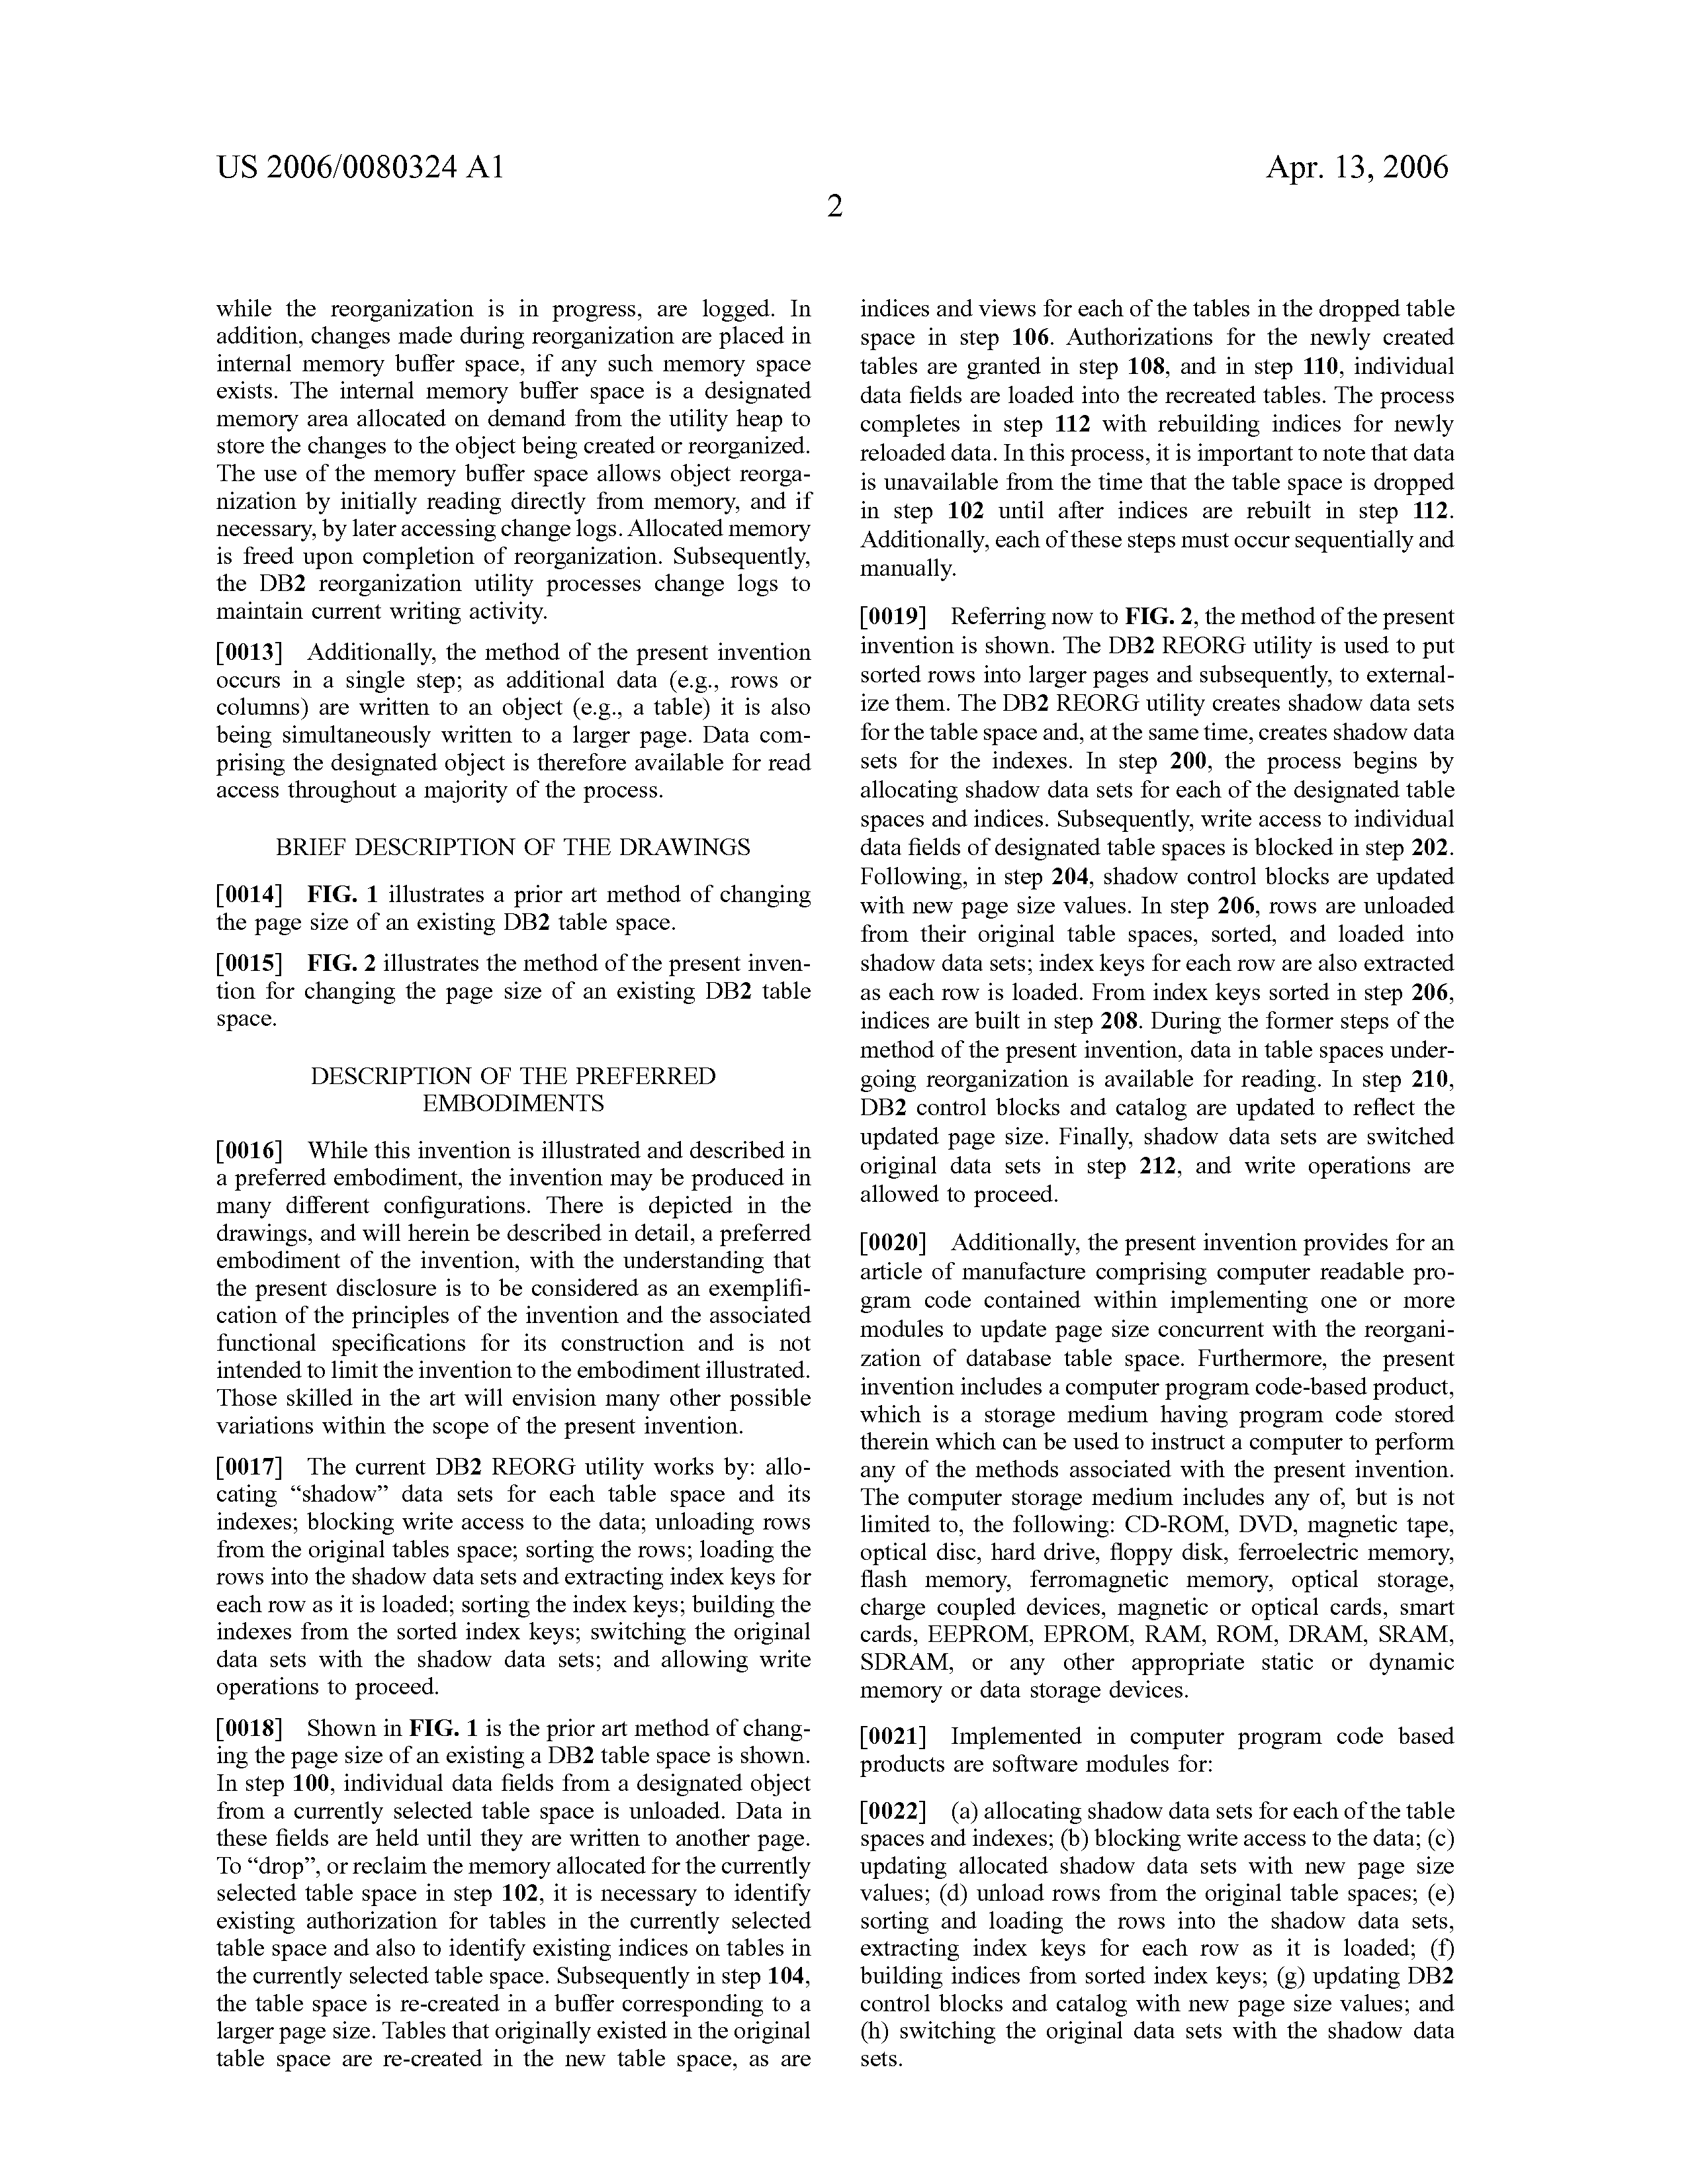 US 2006/0080324 A1 - Method Of Changing The Page Size Of A